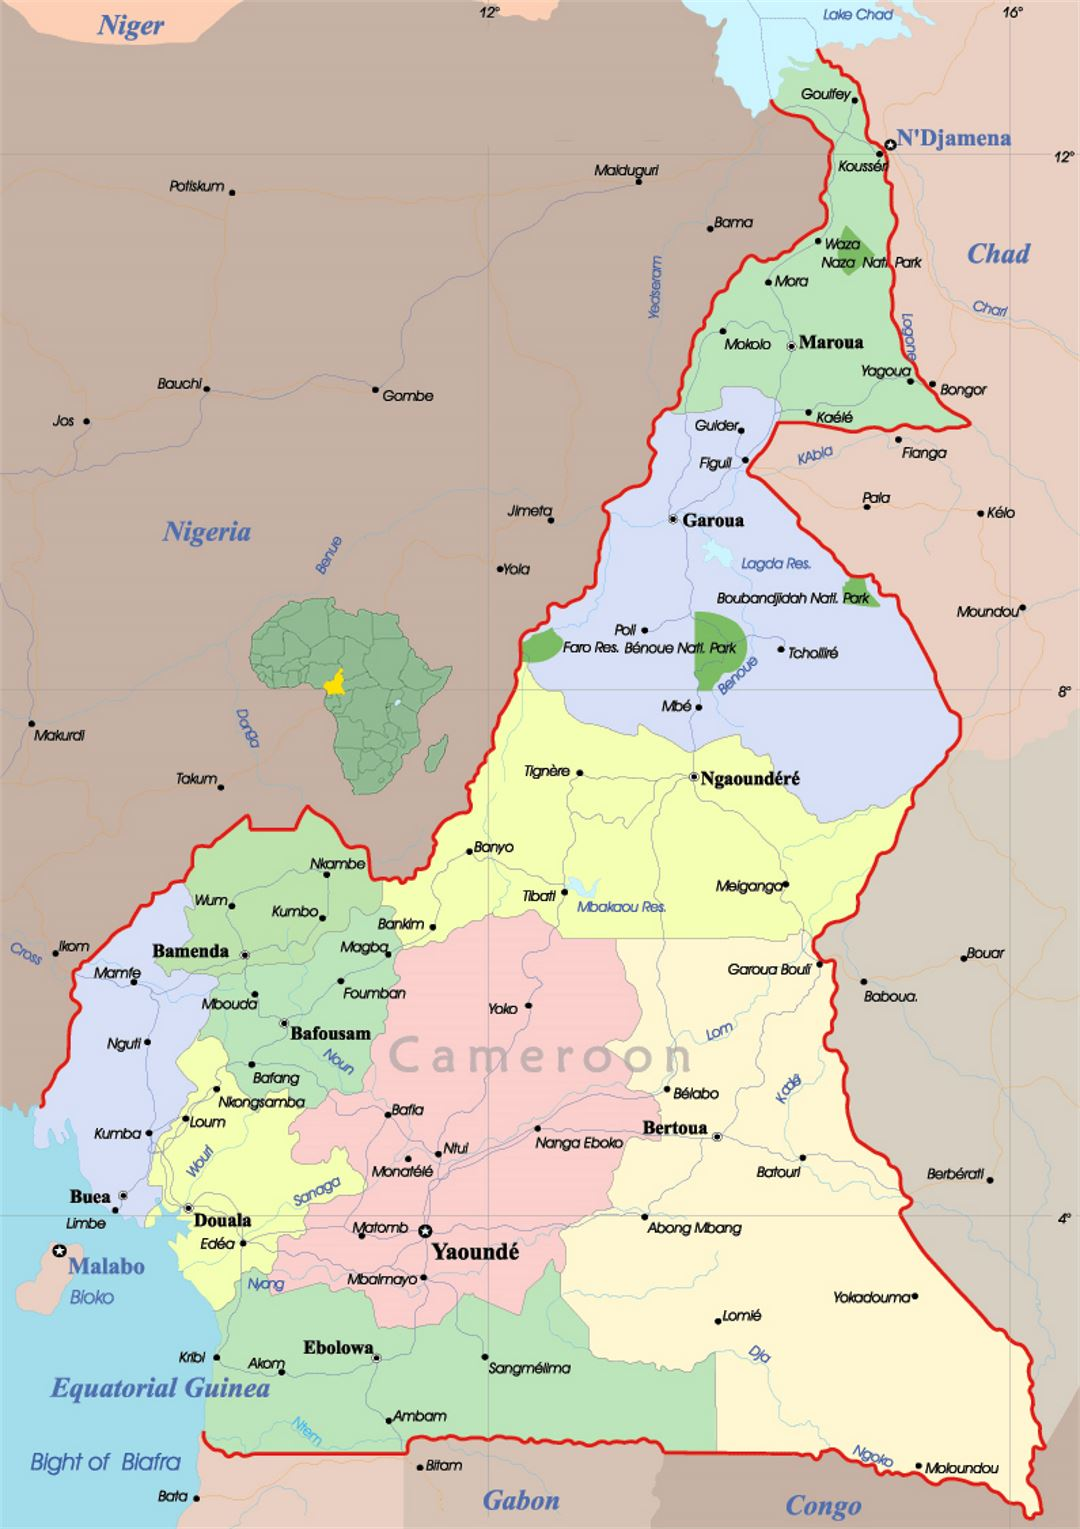 Map Of Africa Cameroon.Detailed Political And Administrative Map Of Cameroon With